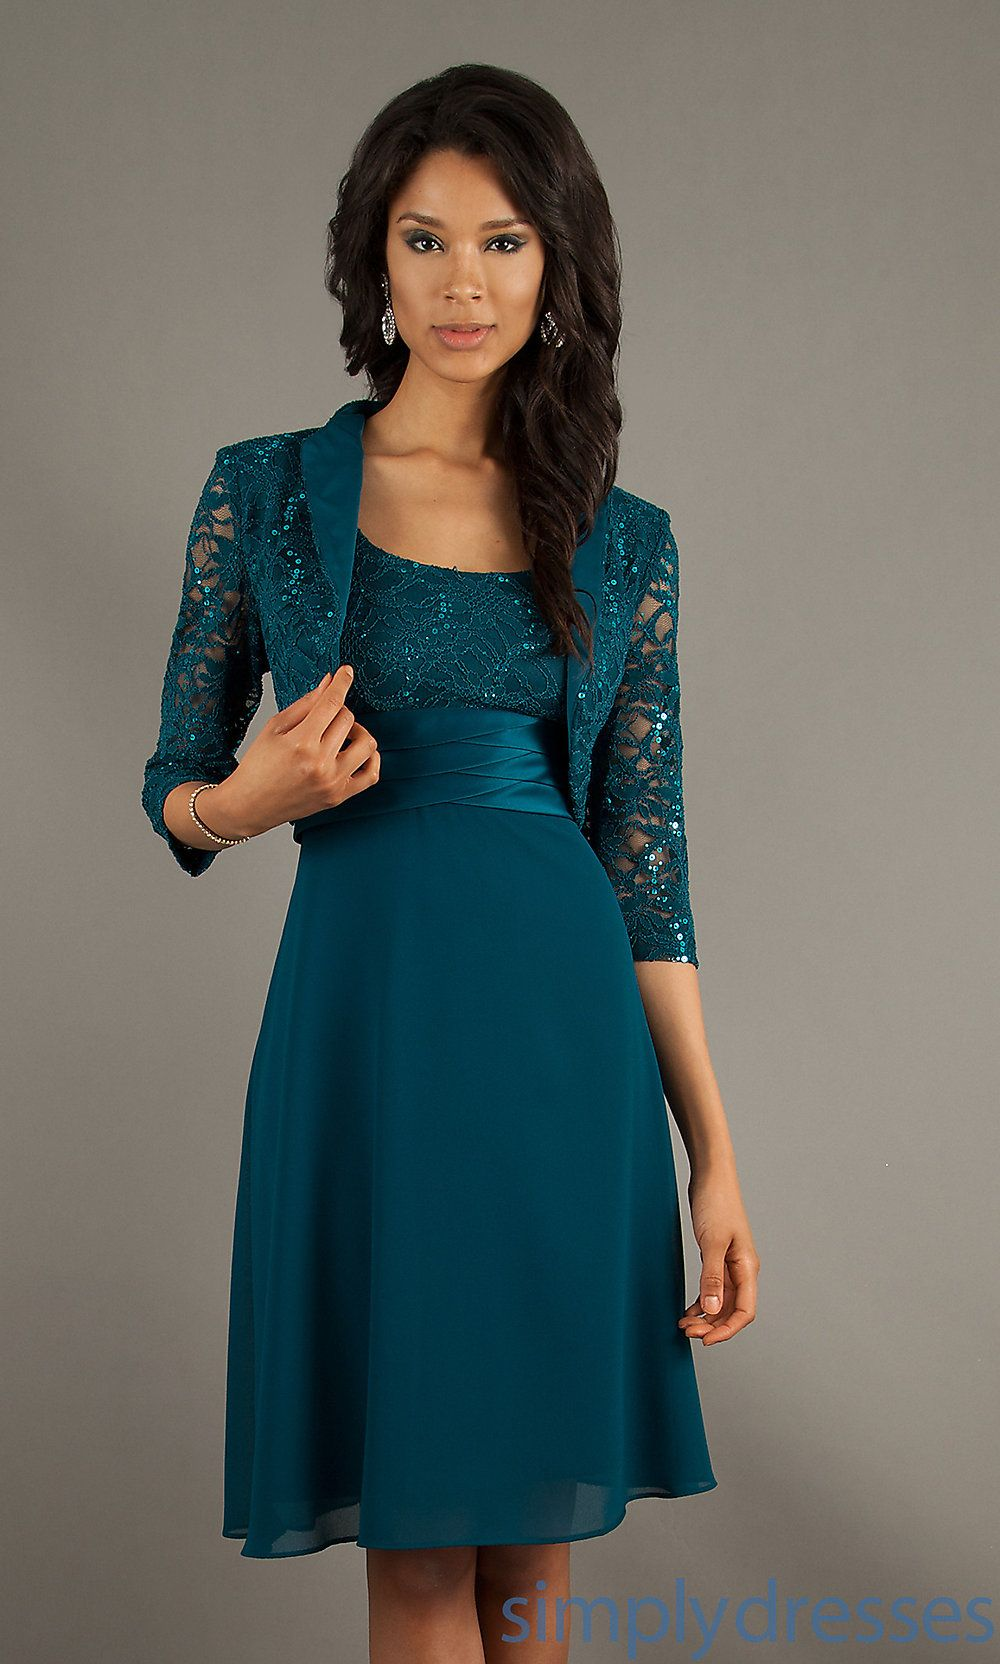 lace embellished semiformal dresses with jacket  simply